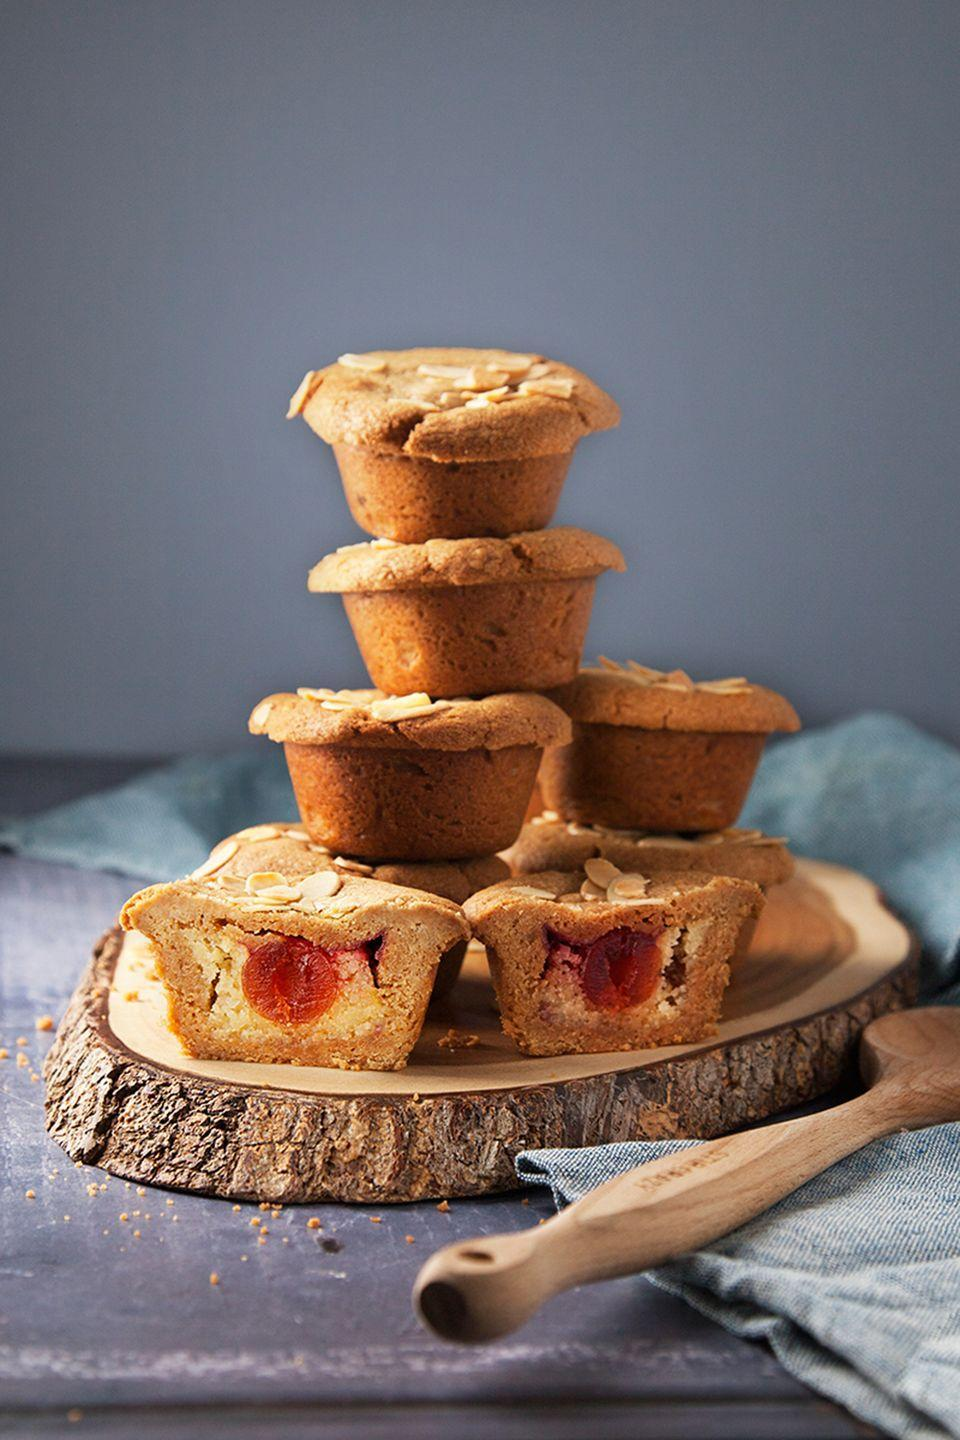 """<p>Oh how we love cherry bakewell tarts, and we've stuffed these cookie cups with the flavours for the perfect treat.</p><p><strong><br>Recipe: <a href=""""https://www.goodhousekeeping.com/uk/food/recipes/a26585882/cherry-bakewell-cookie-cups/"""" rel=""""nofollow noopener"""" target=""""_blank"""" data-ylk=""""slk:Cherry bakewell cookie cups"""" class=""""link rapid-noclick-resp"""">Cherry bakewell cookie cups</a></strong></p>"""